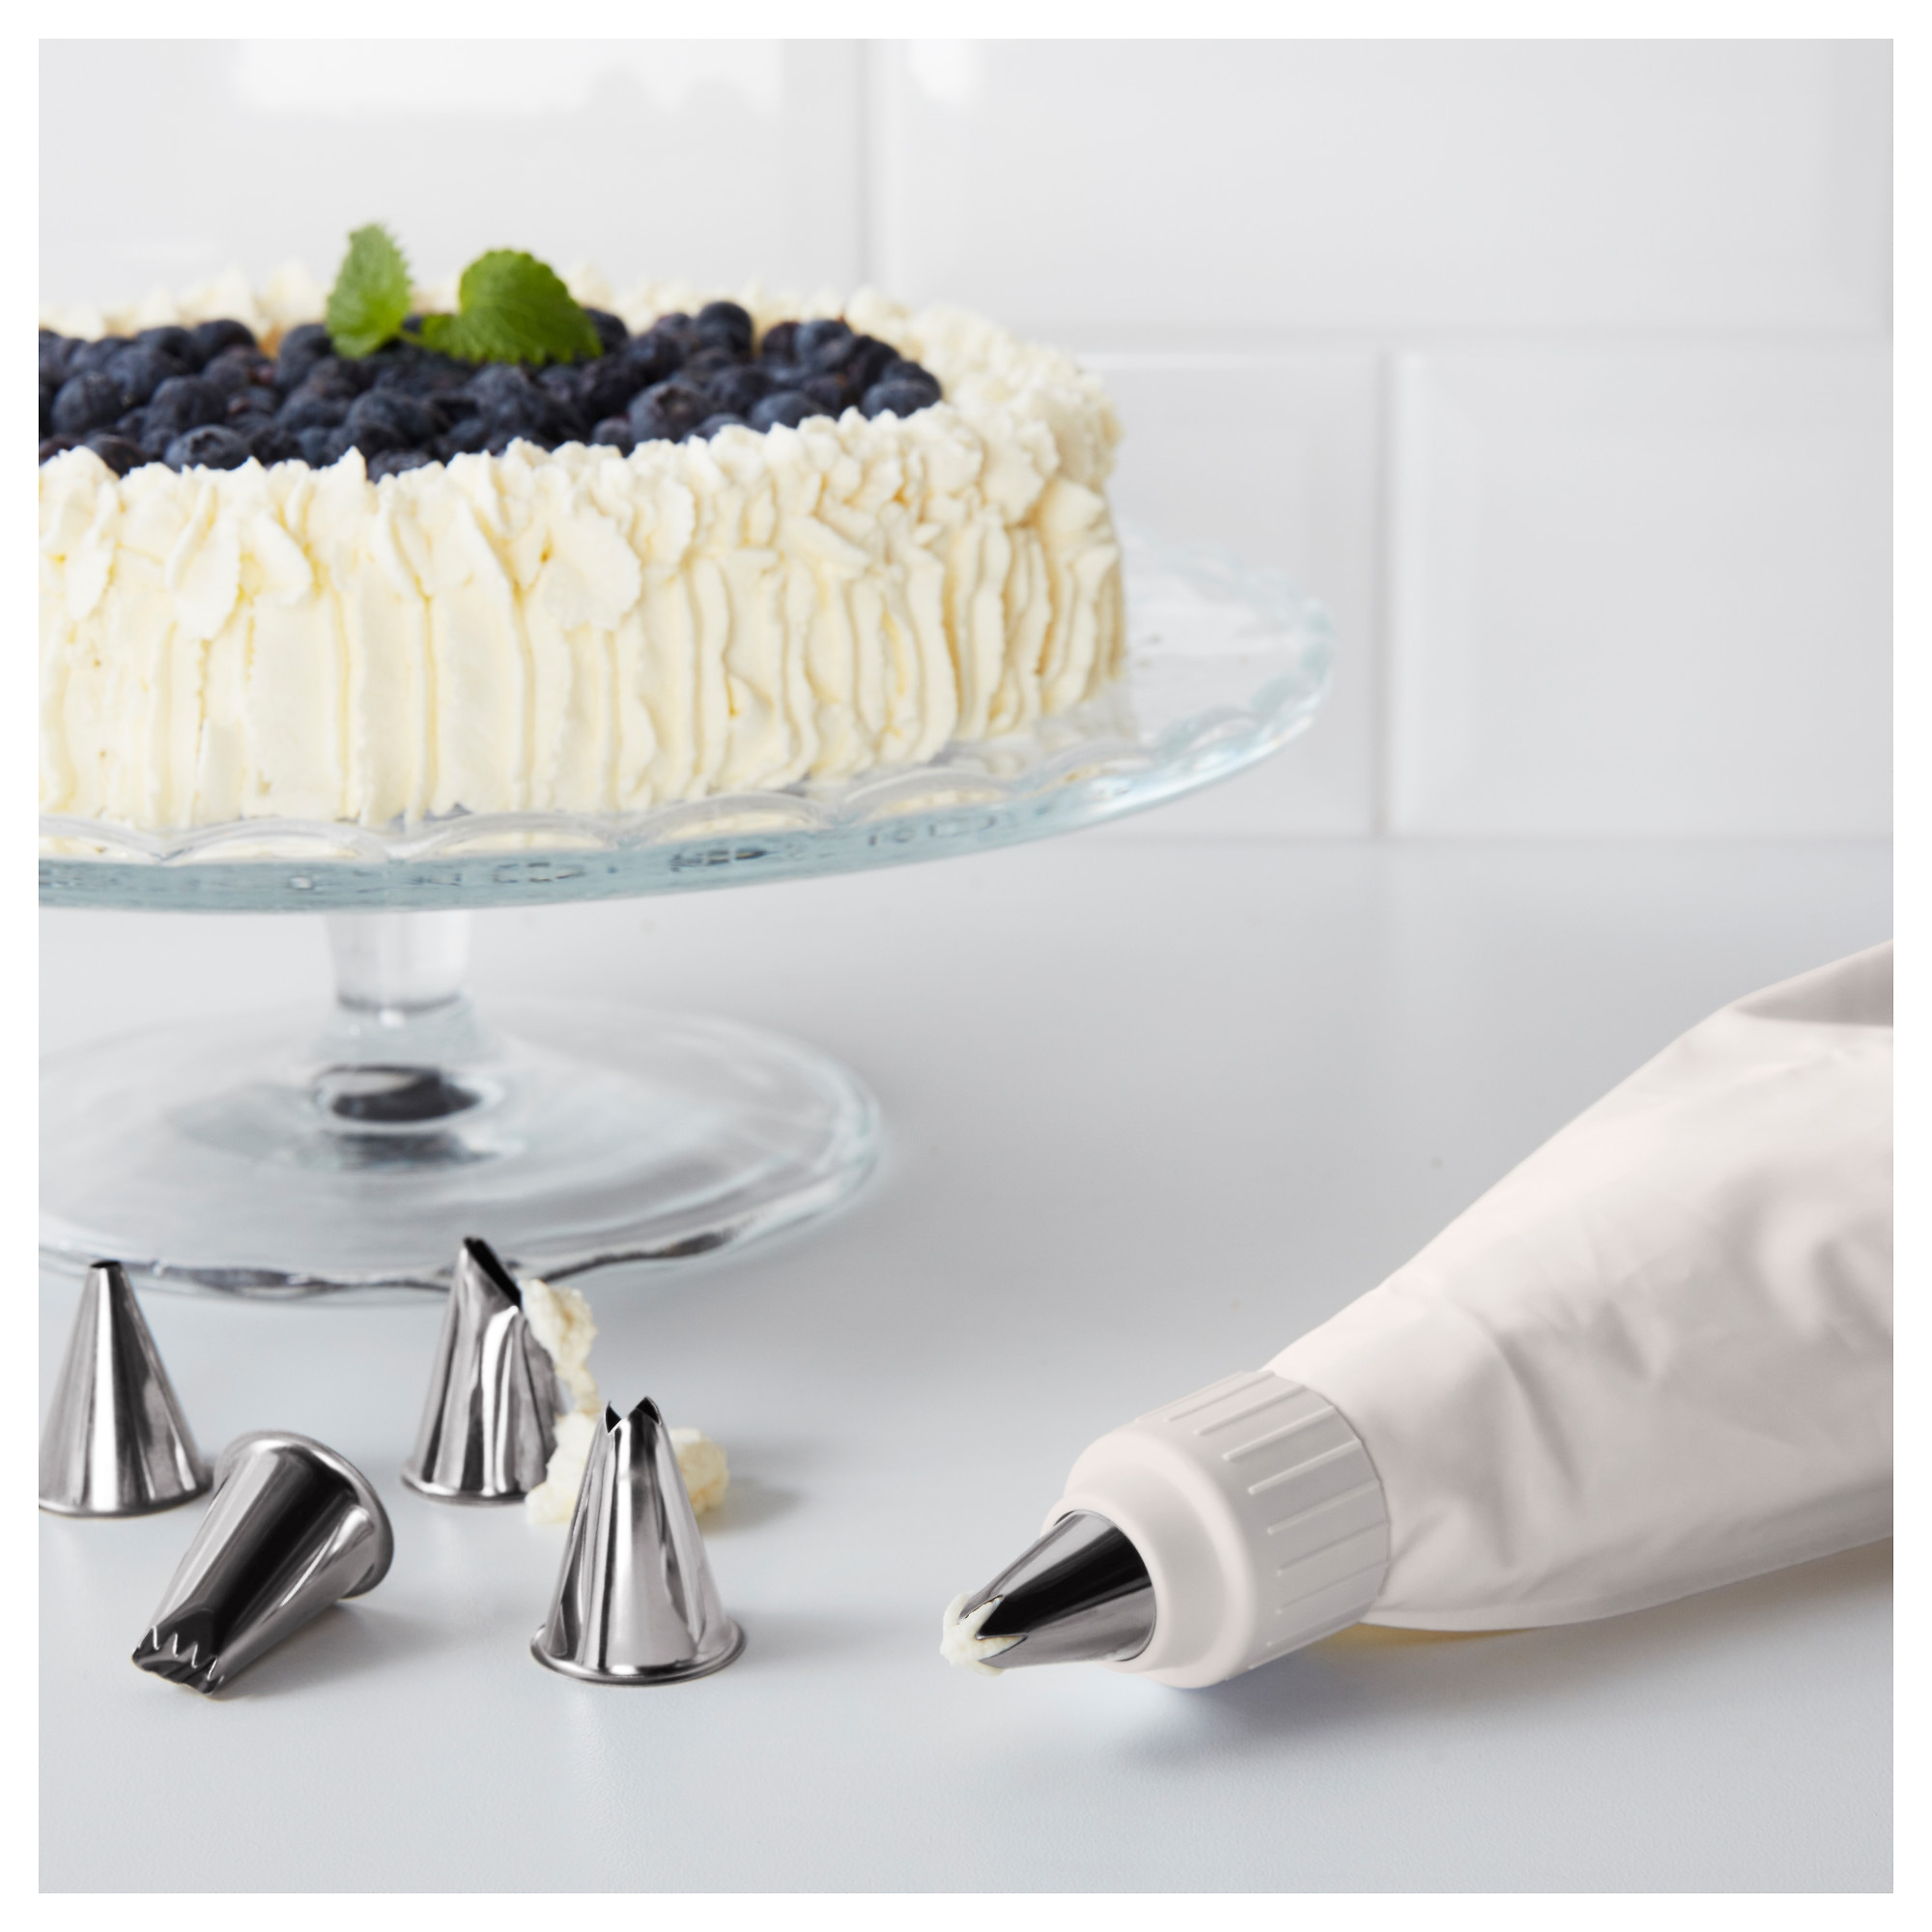 SMAKSAM Cake decorating set IKEA